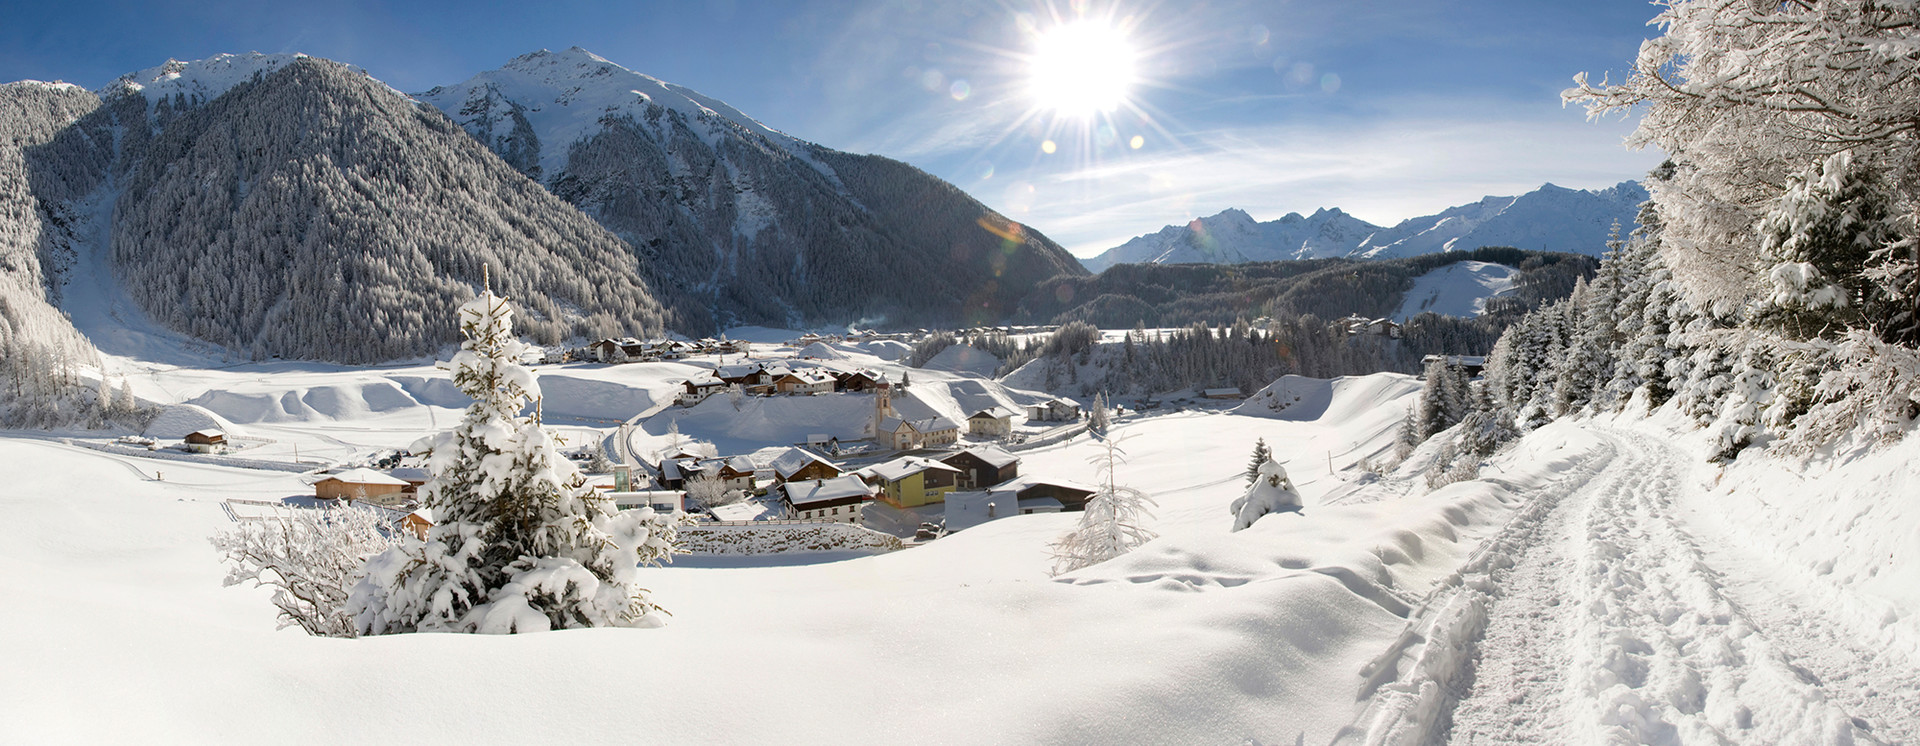 Summerparadise and winterwonderland: Oetzal